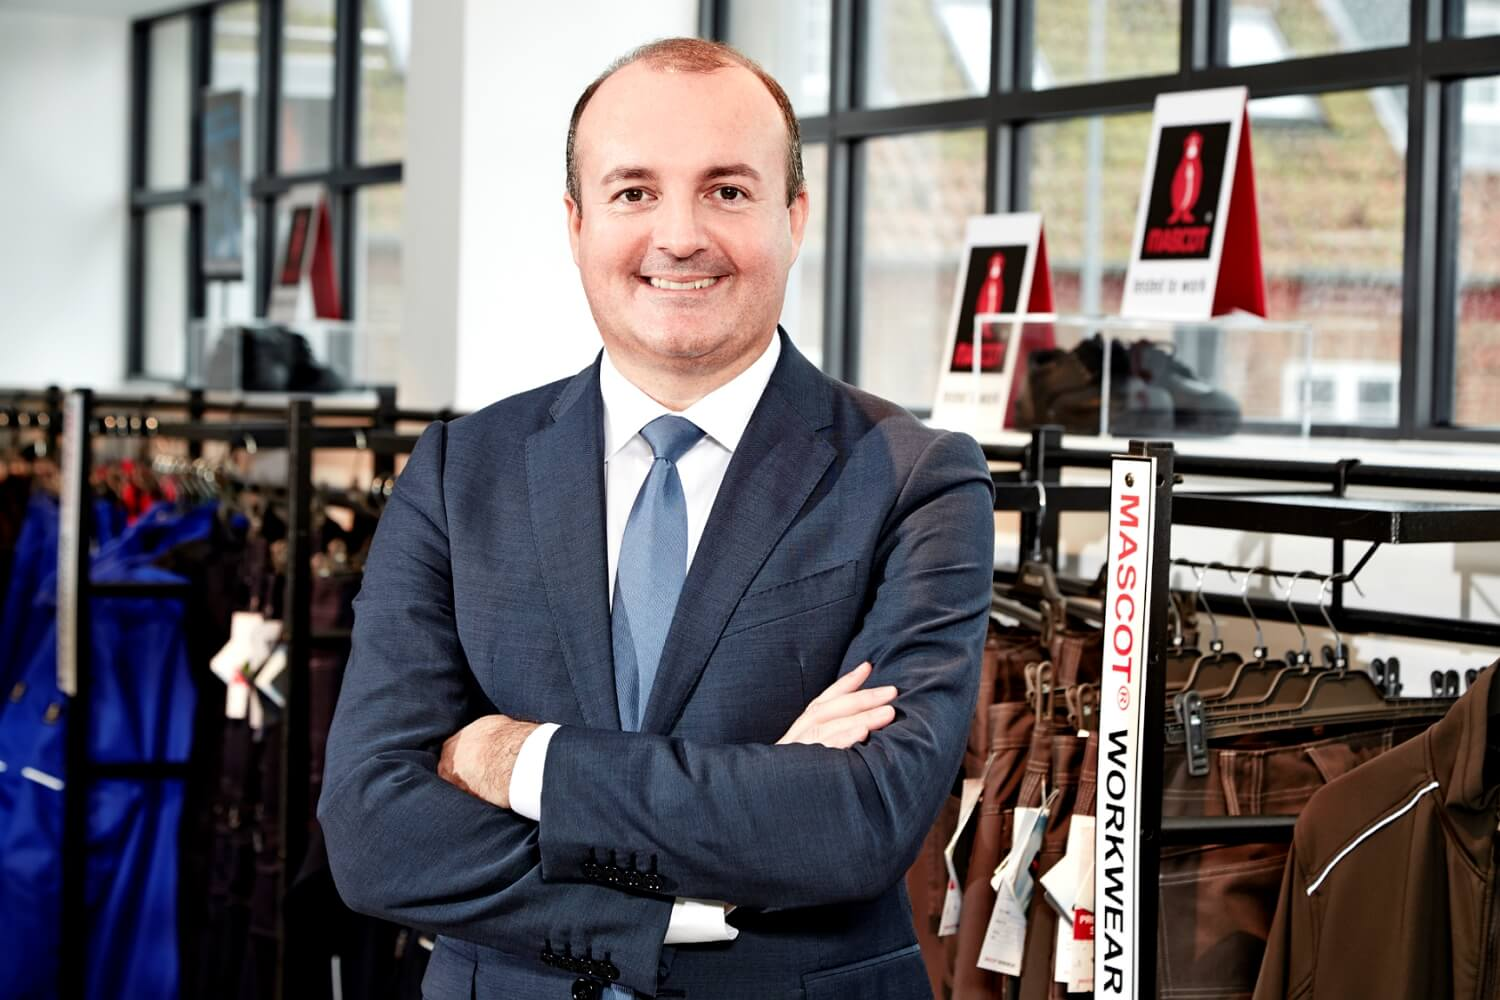 2019 - Michael Grosbøl Managing Director